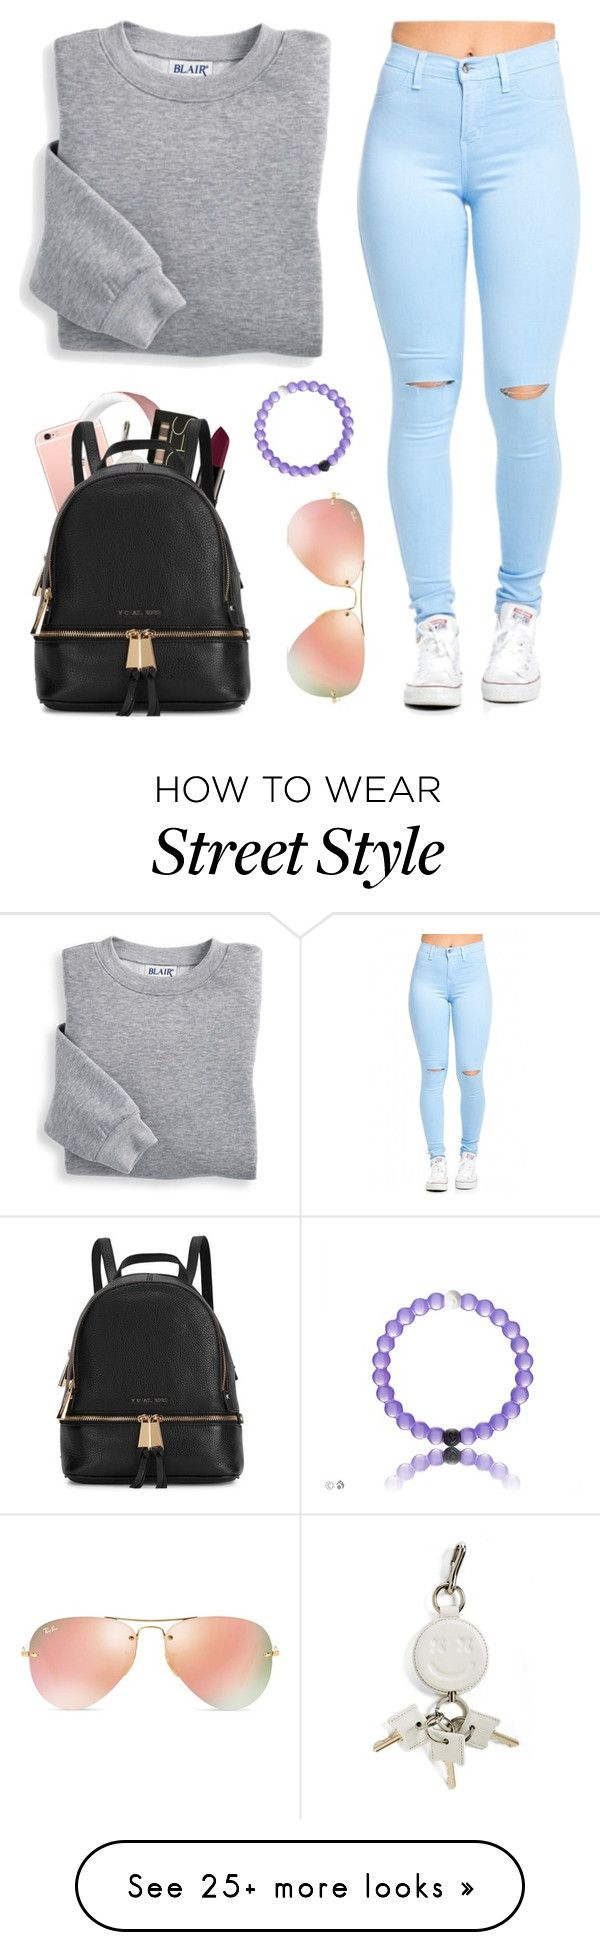 My style ✌️ by ducky-momo-fangirl on Polyvore featuring moda, Smashbox, Blair, Alexander Wang, Ray-Ban y Michael Kors ✌ ▄▄▄Find more here: Click sunglass.emocione... ✌▄▄▄Ray Ban Sunglasses! More than 80% off!